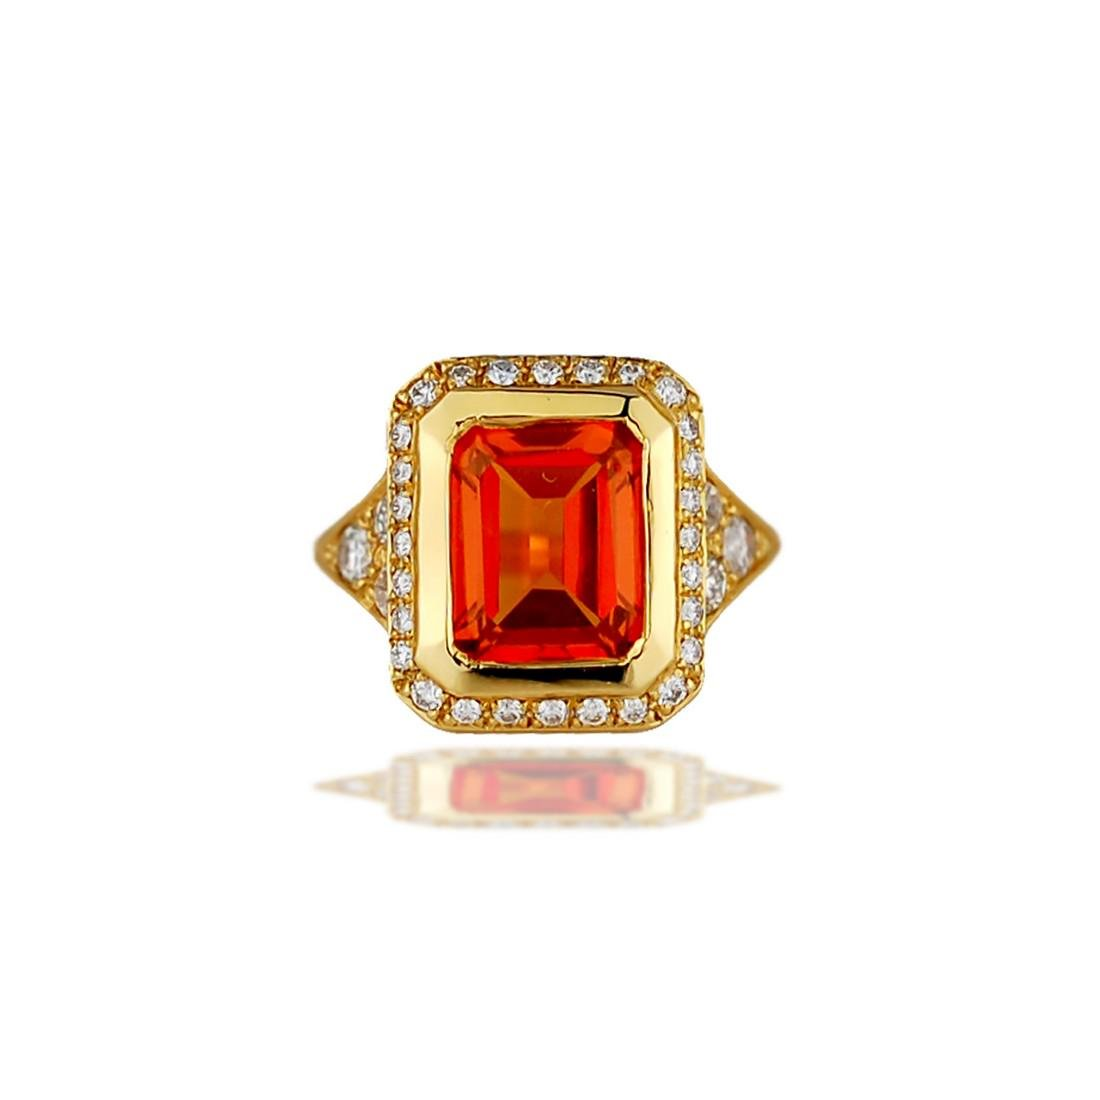 3.5 Carat Orange Sapphire Diamond 14 Karat Yellow Gold